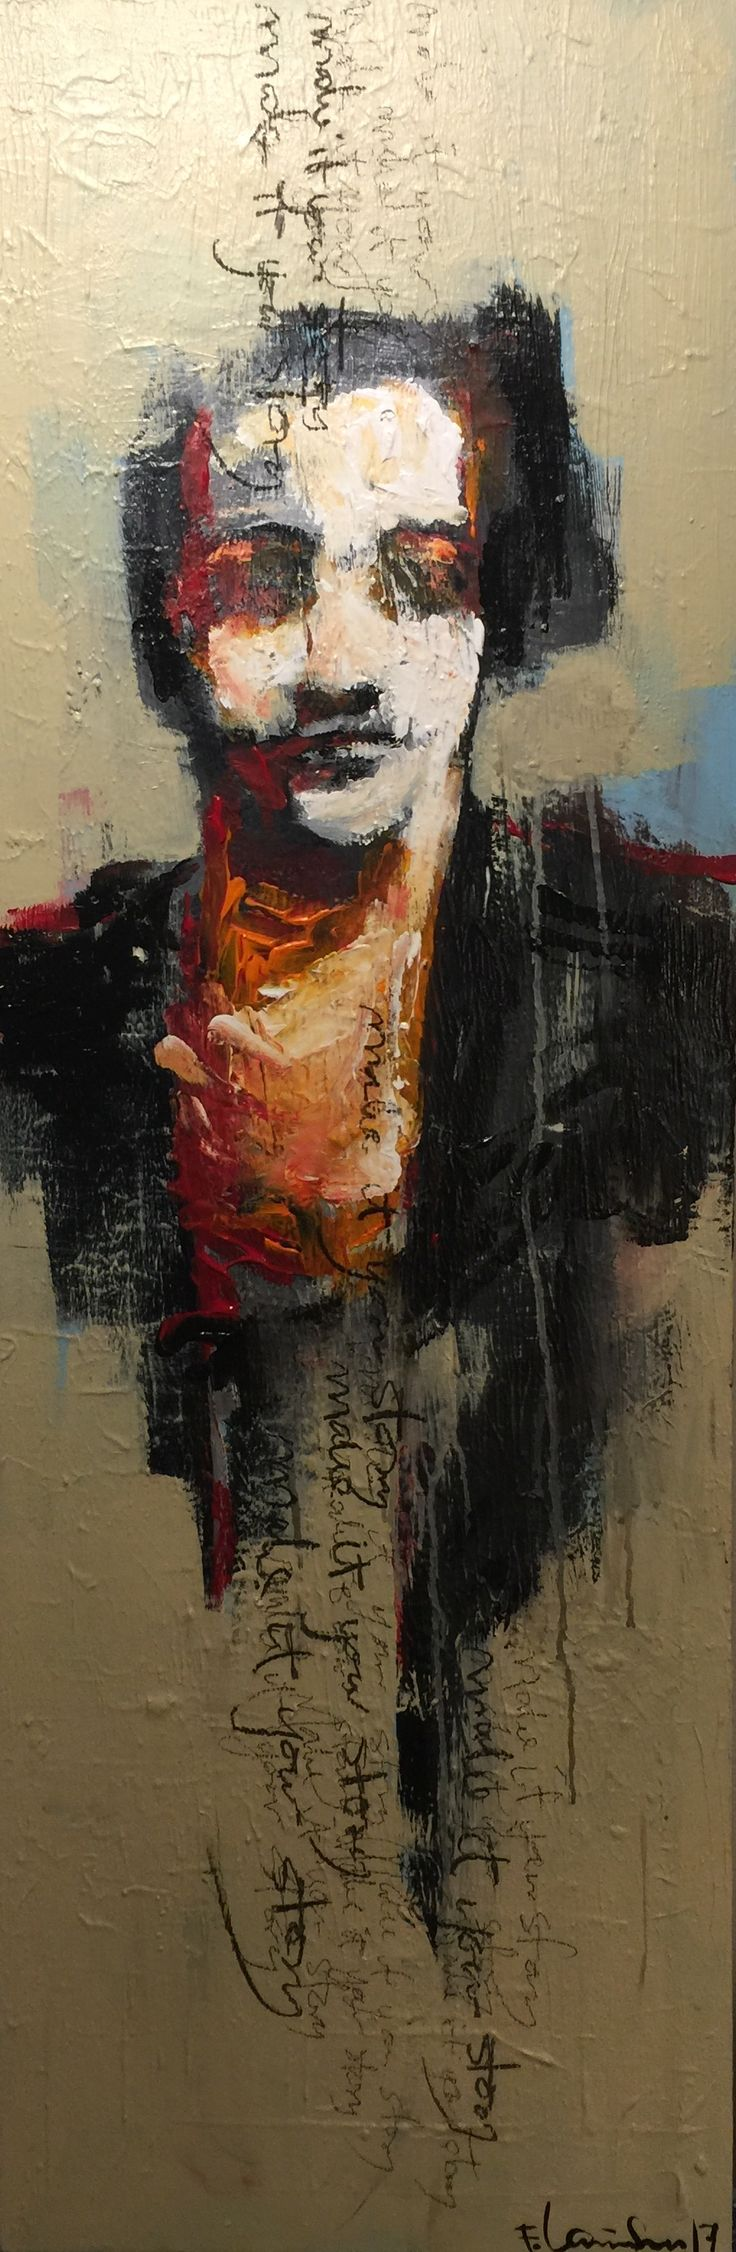 Painted by Frode Lauvsnes #art #painting #acrylicpainting #figurative